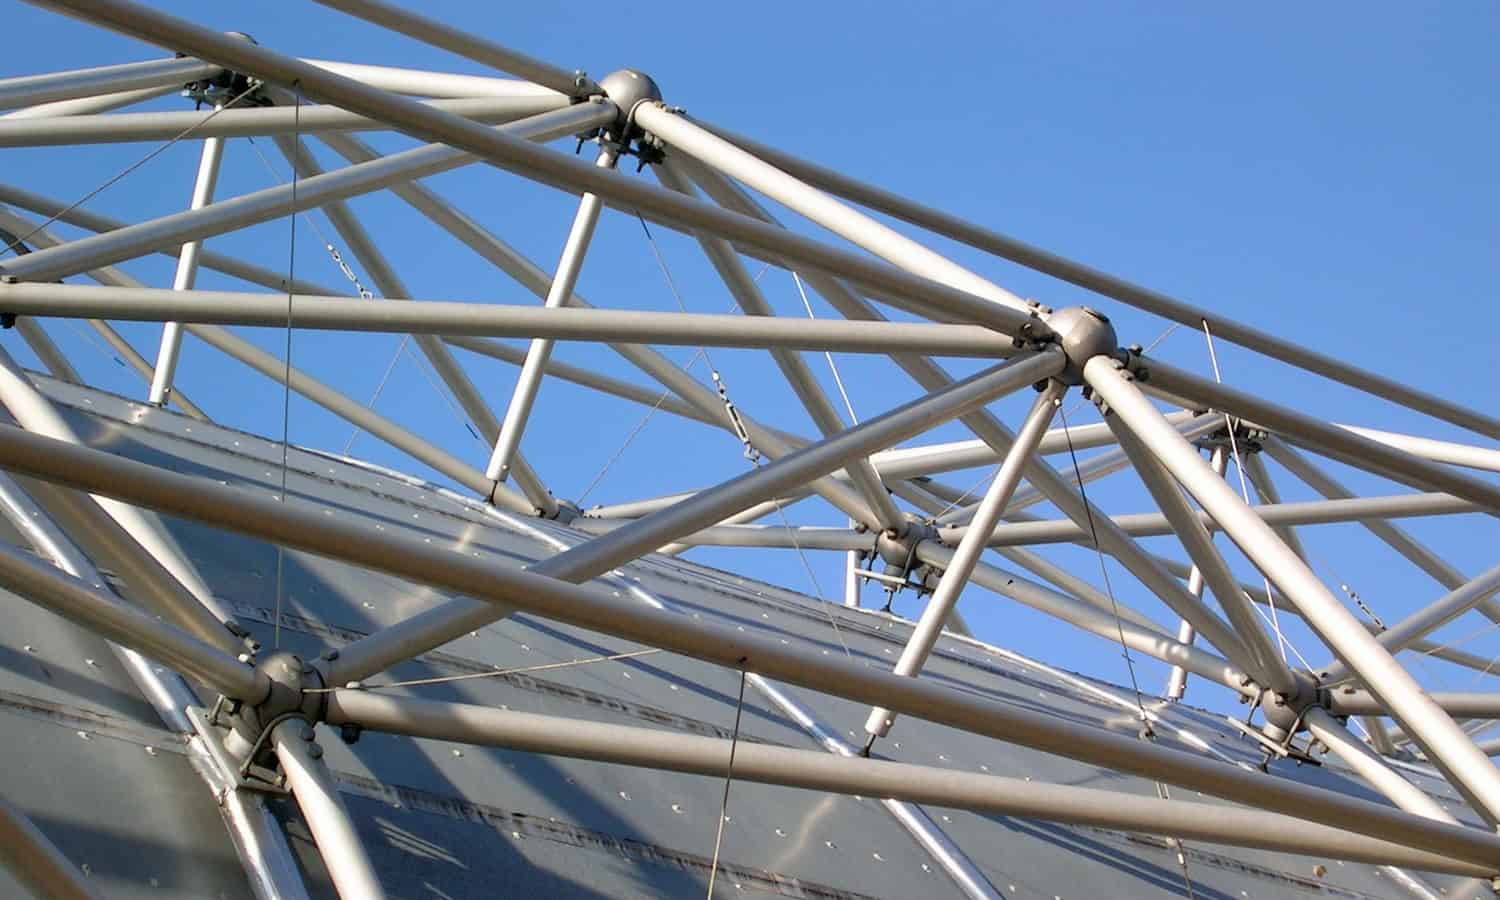 Detail of the engineered structure